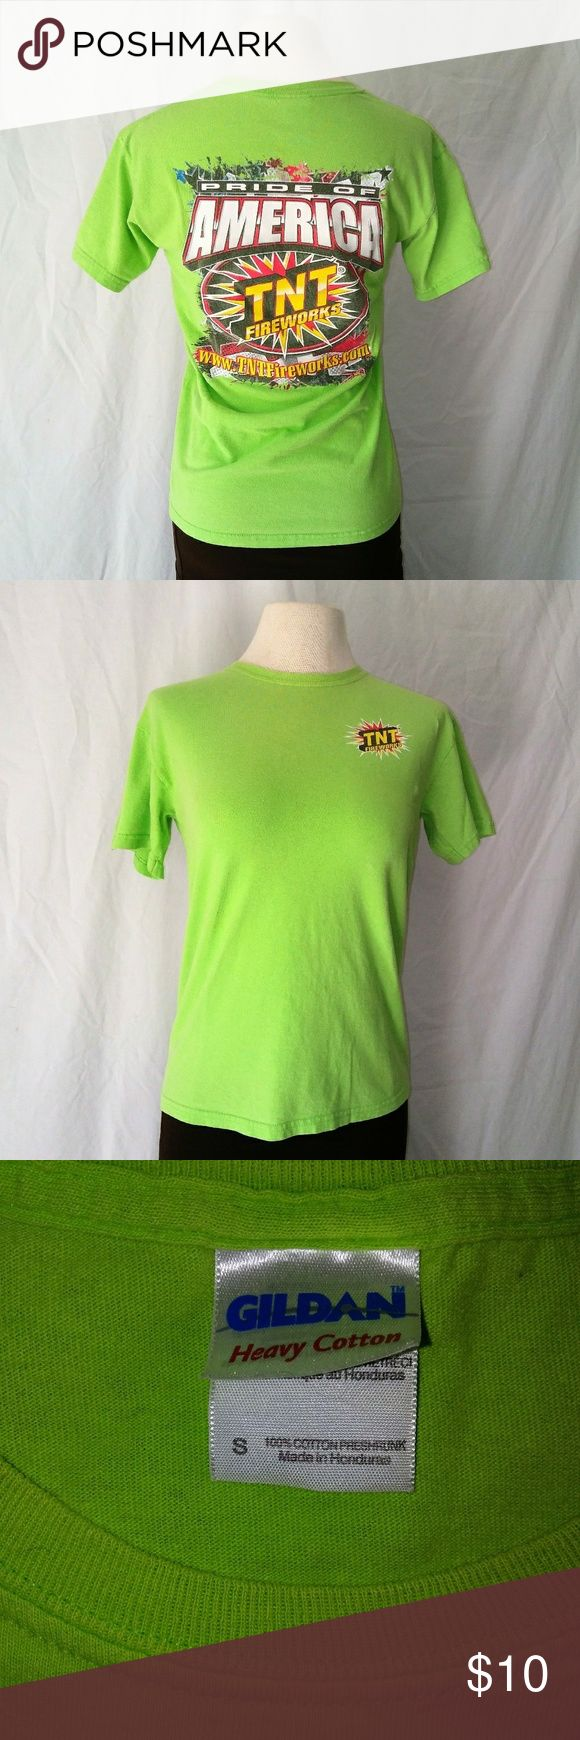 """TNT Fireworks Graphic Tee Neon Green """"Pride of America"""" TNT Fireworks T-Shirt. Women's Small. In excellent used condition. From a smoke free home. Make an offer! SAVE on SHIPPING & get a DISCOUNT by making a BUNDLE! Get 20% off on 2+ items. 2for1 SCARF SALE: Buy one """"2for1"""" scarf at full price and get another scarf of equal or lesser value for free! Purchase the first scarf, comment on the second scarf, & I'll ship both! Vintage Tops Tees - Short Sleeve"""